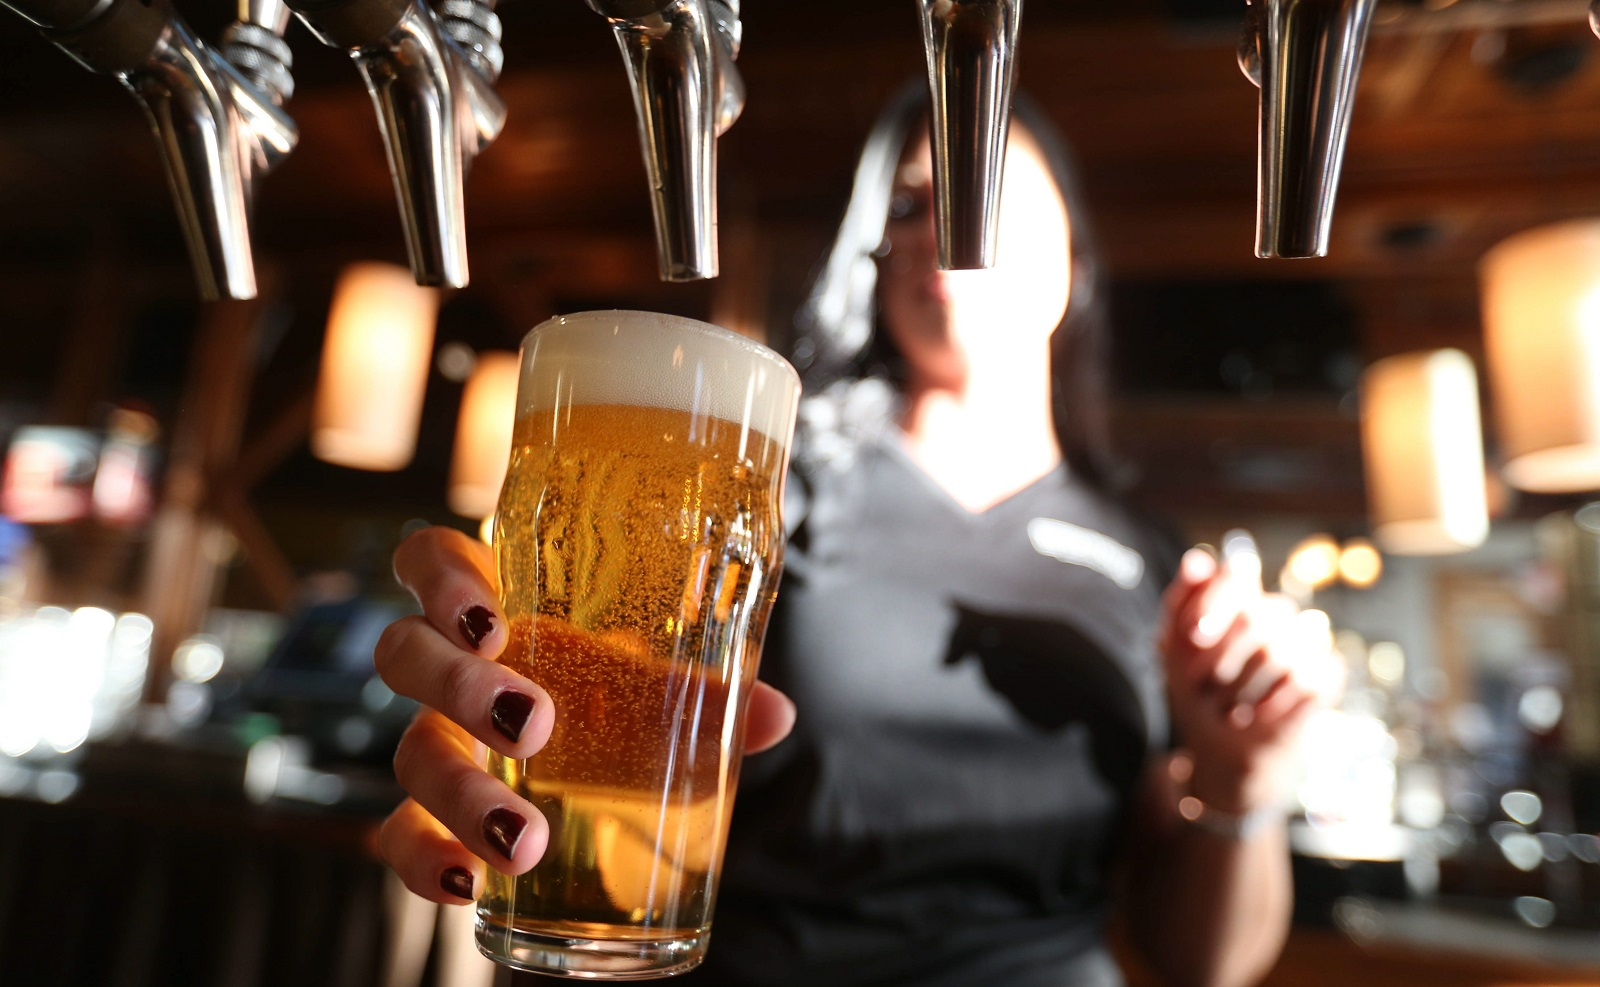 Ellicottville Brewing Co. has opened its newest brewery and pub in Little Valley. (Sharon Cantillon/Buffalo News file photo)